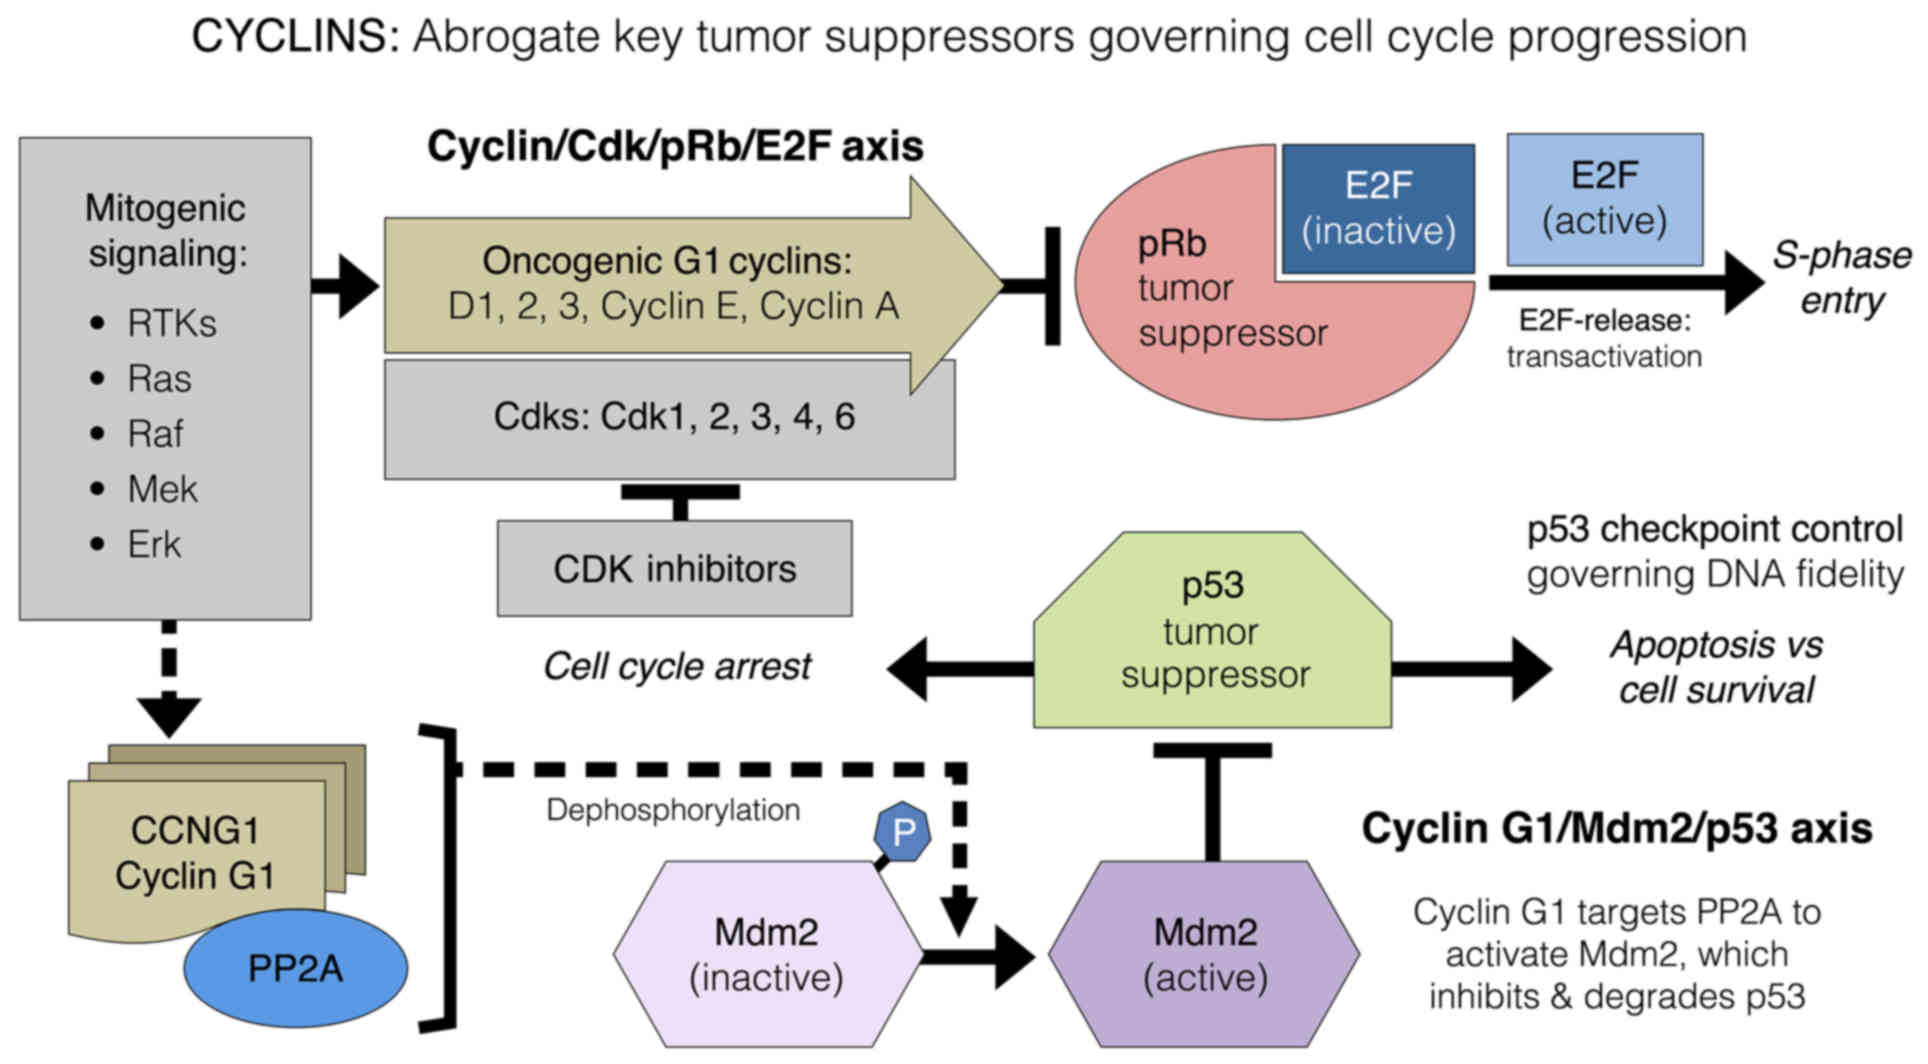 Cell Cycle Checkpoint Control The Cyclin G1 Mdm2 P53 Axis